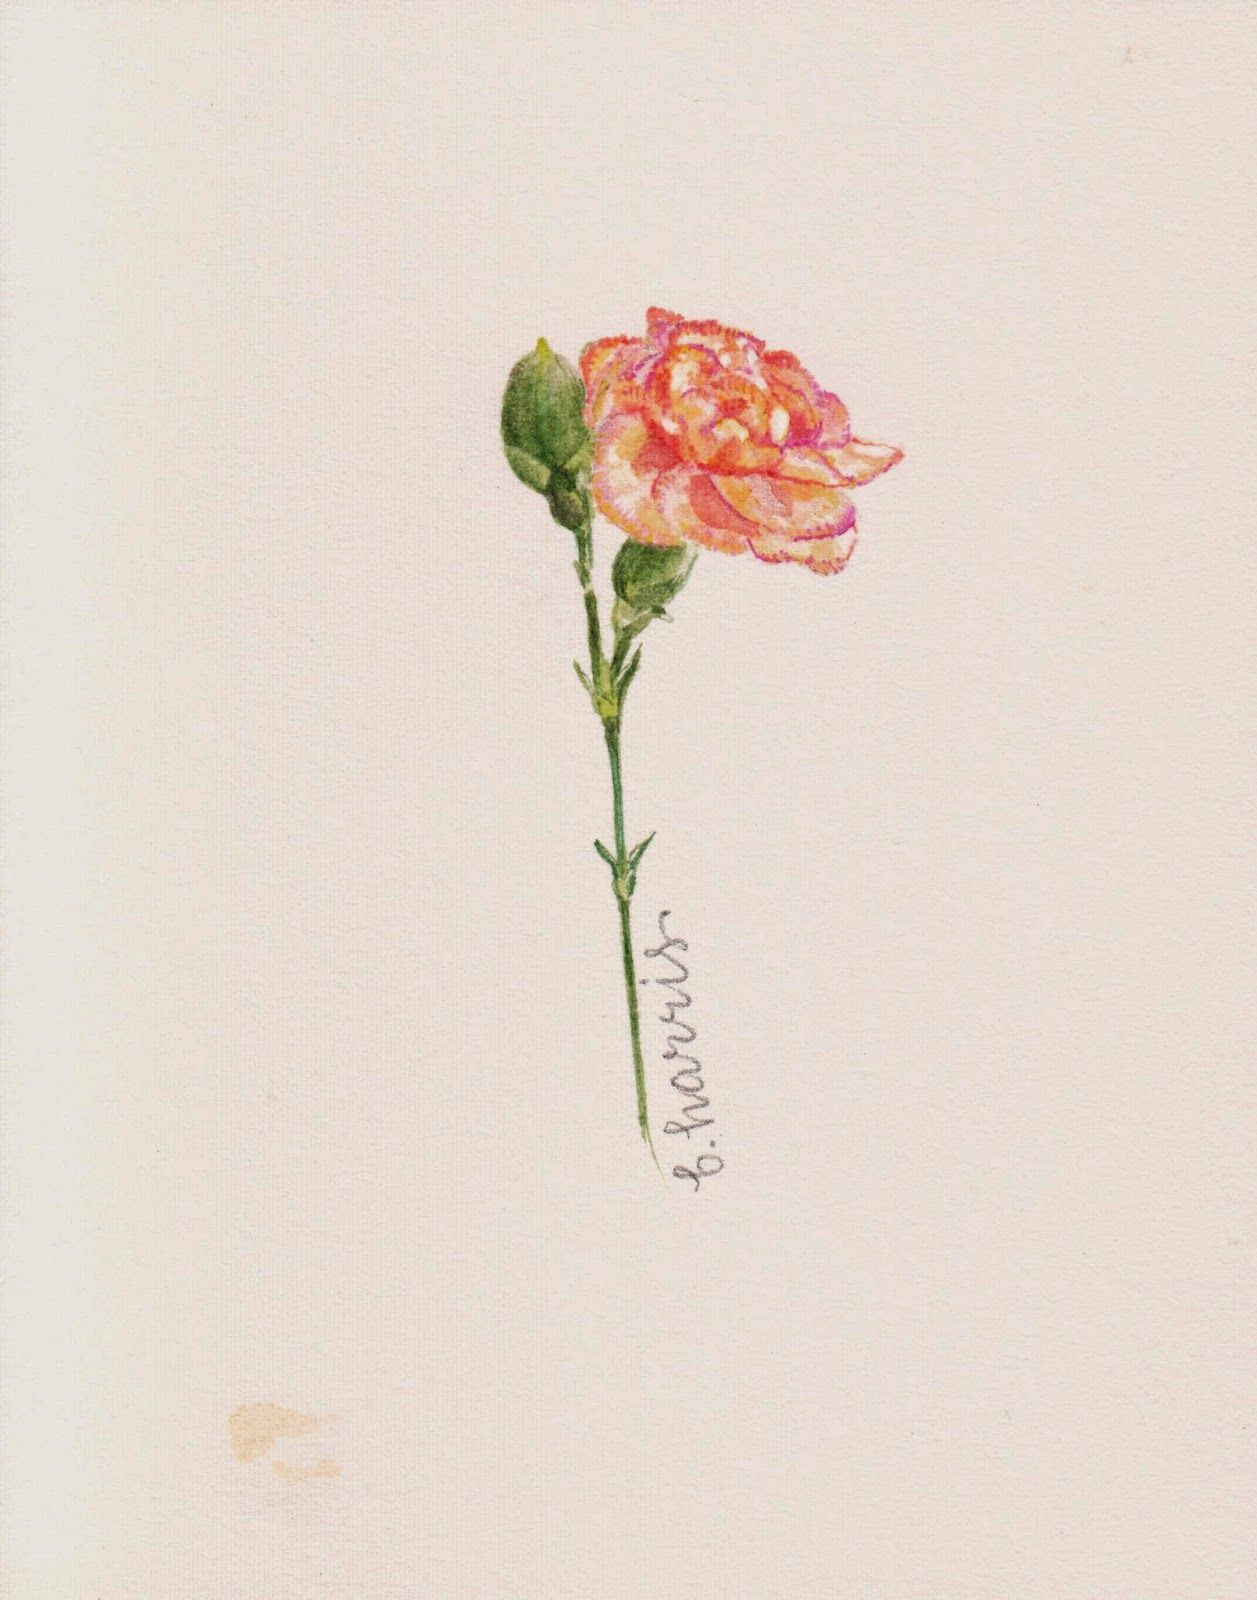 Picotee Carnation Watercolor Carnation Tattoo Carnation Flower